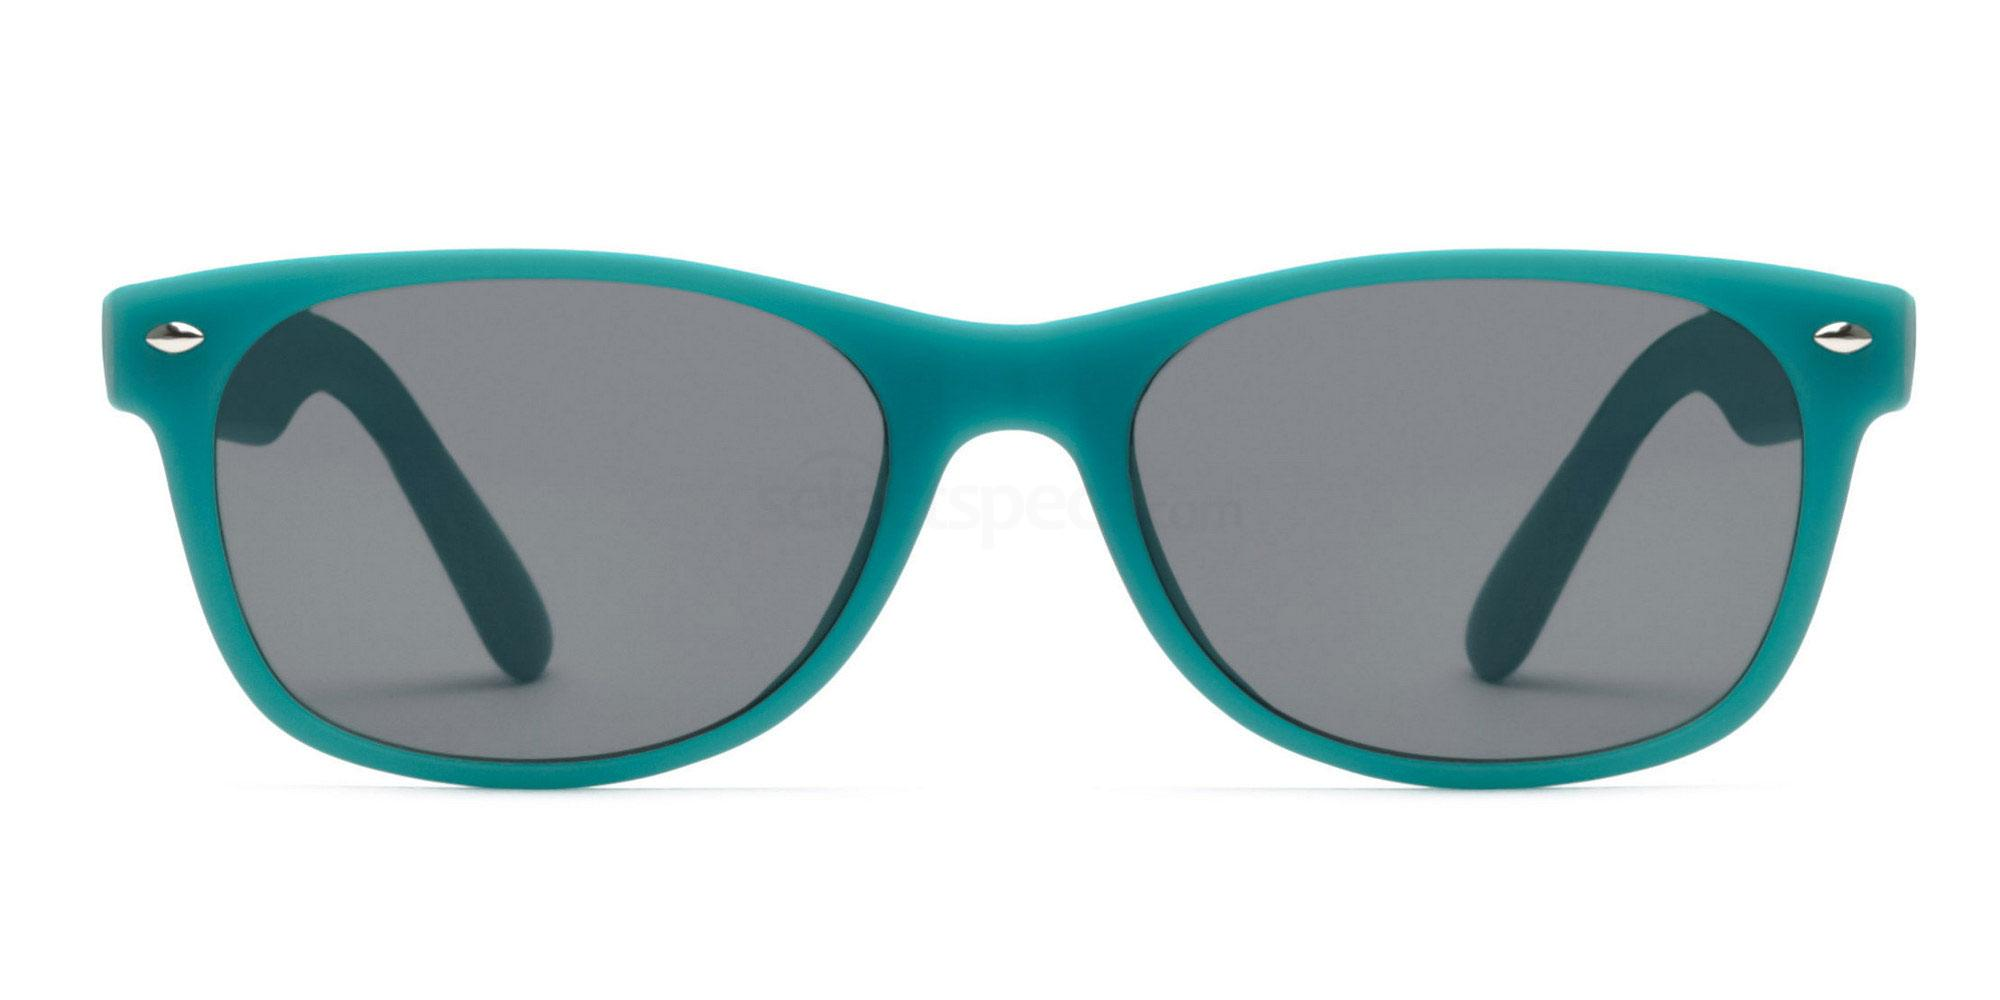 Green S8122 - Green (Sunglasses) Sunglasses, Savannah